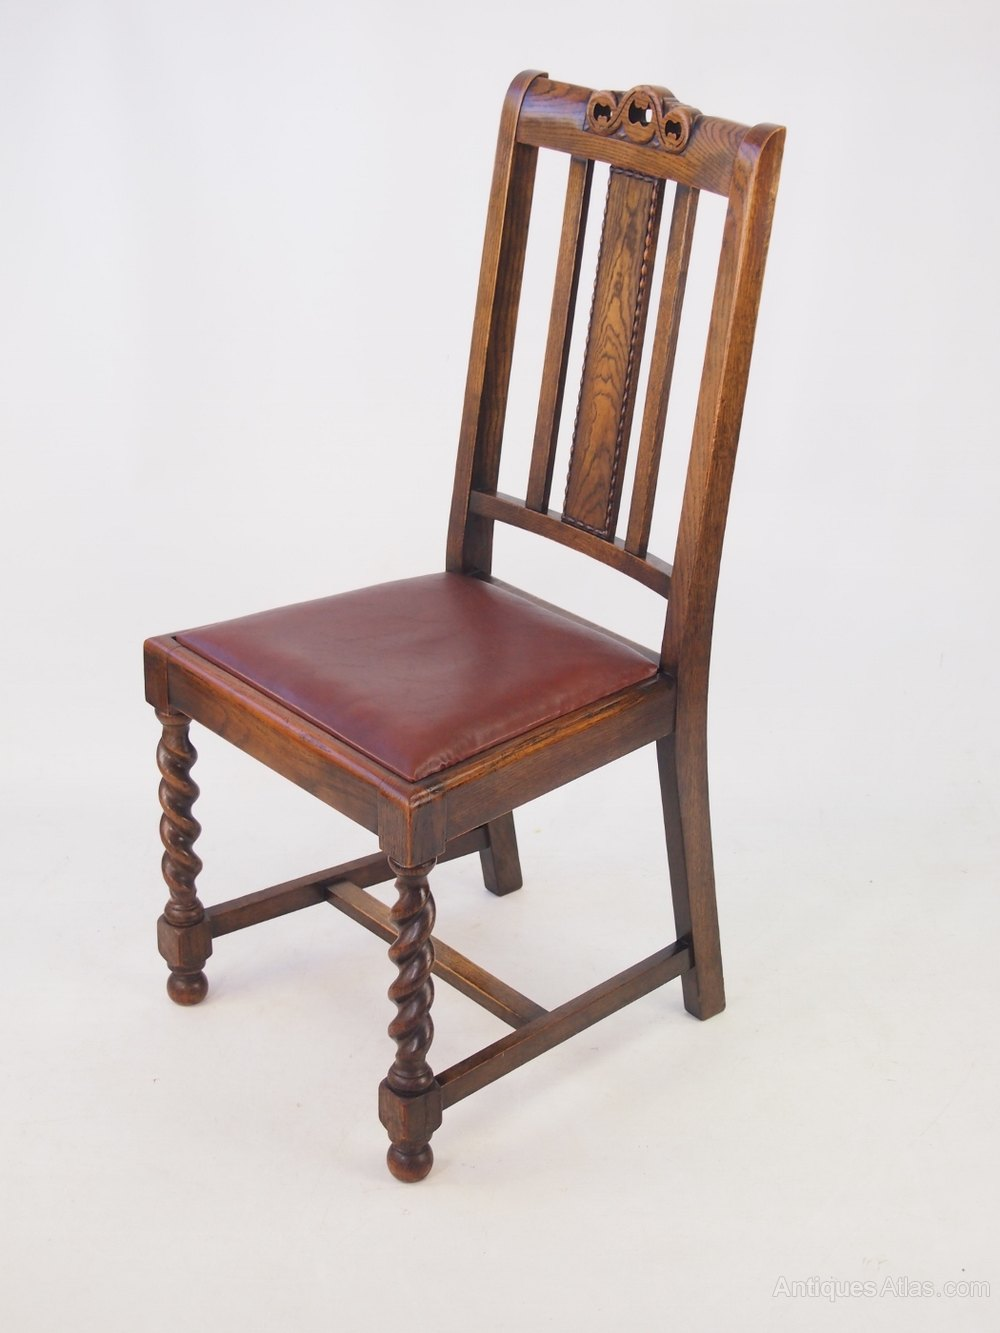 ... Chair Sets of 4 Antique Dining Chairs ... - Set 4 Vintage Oak Dining Chairs Circa 1920s - Antiques Atlas